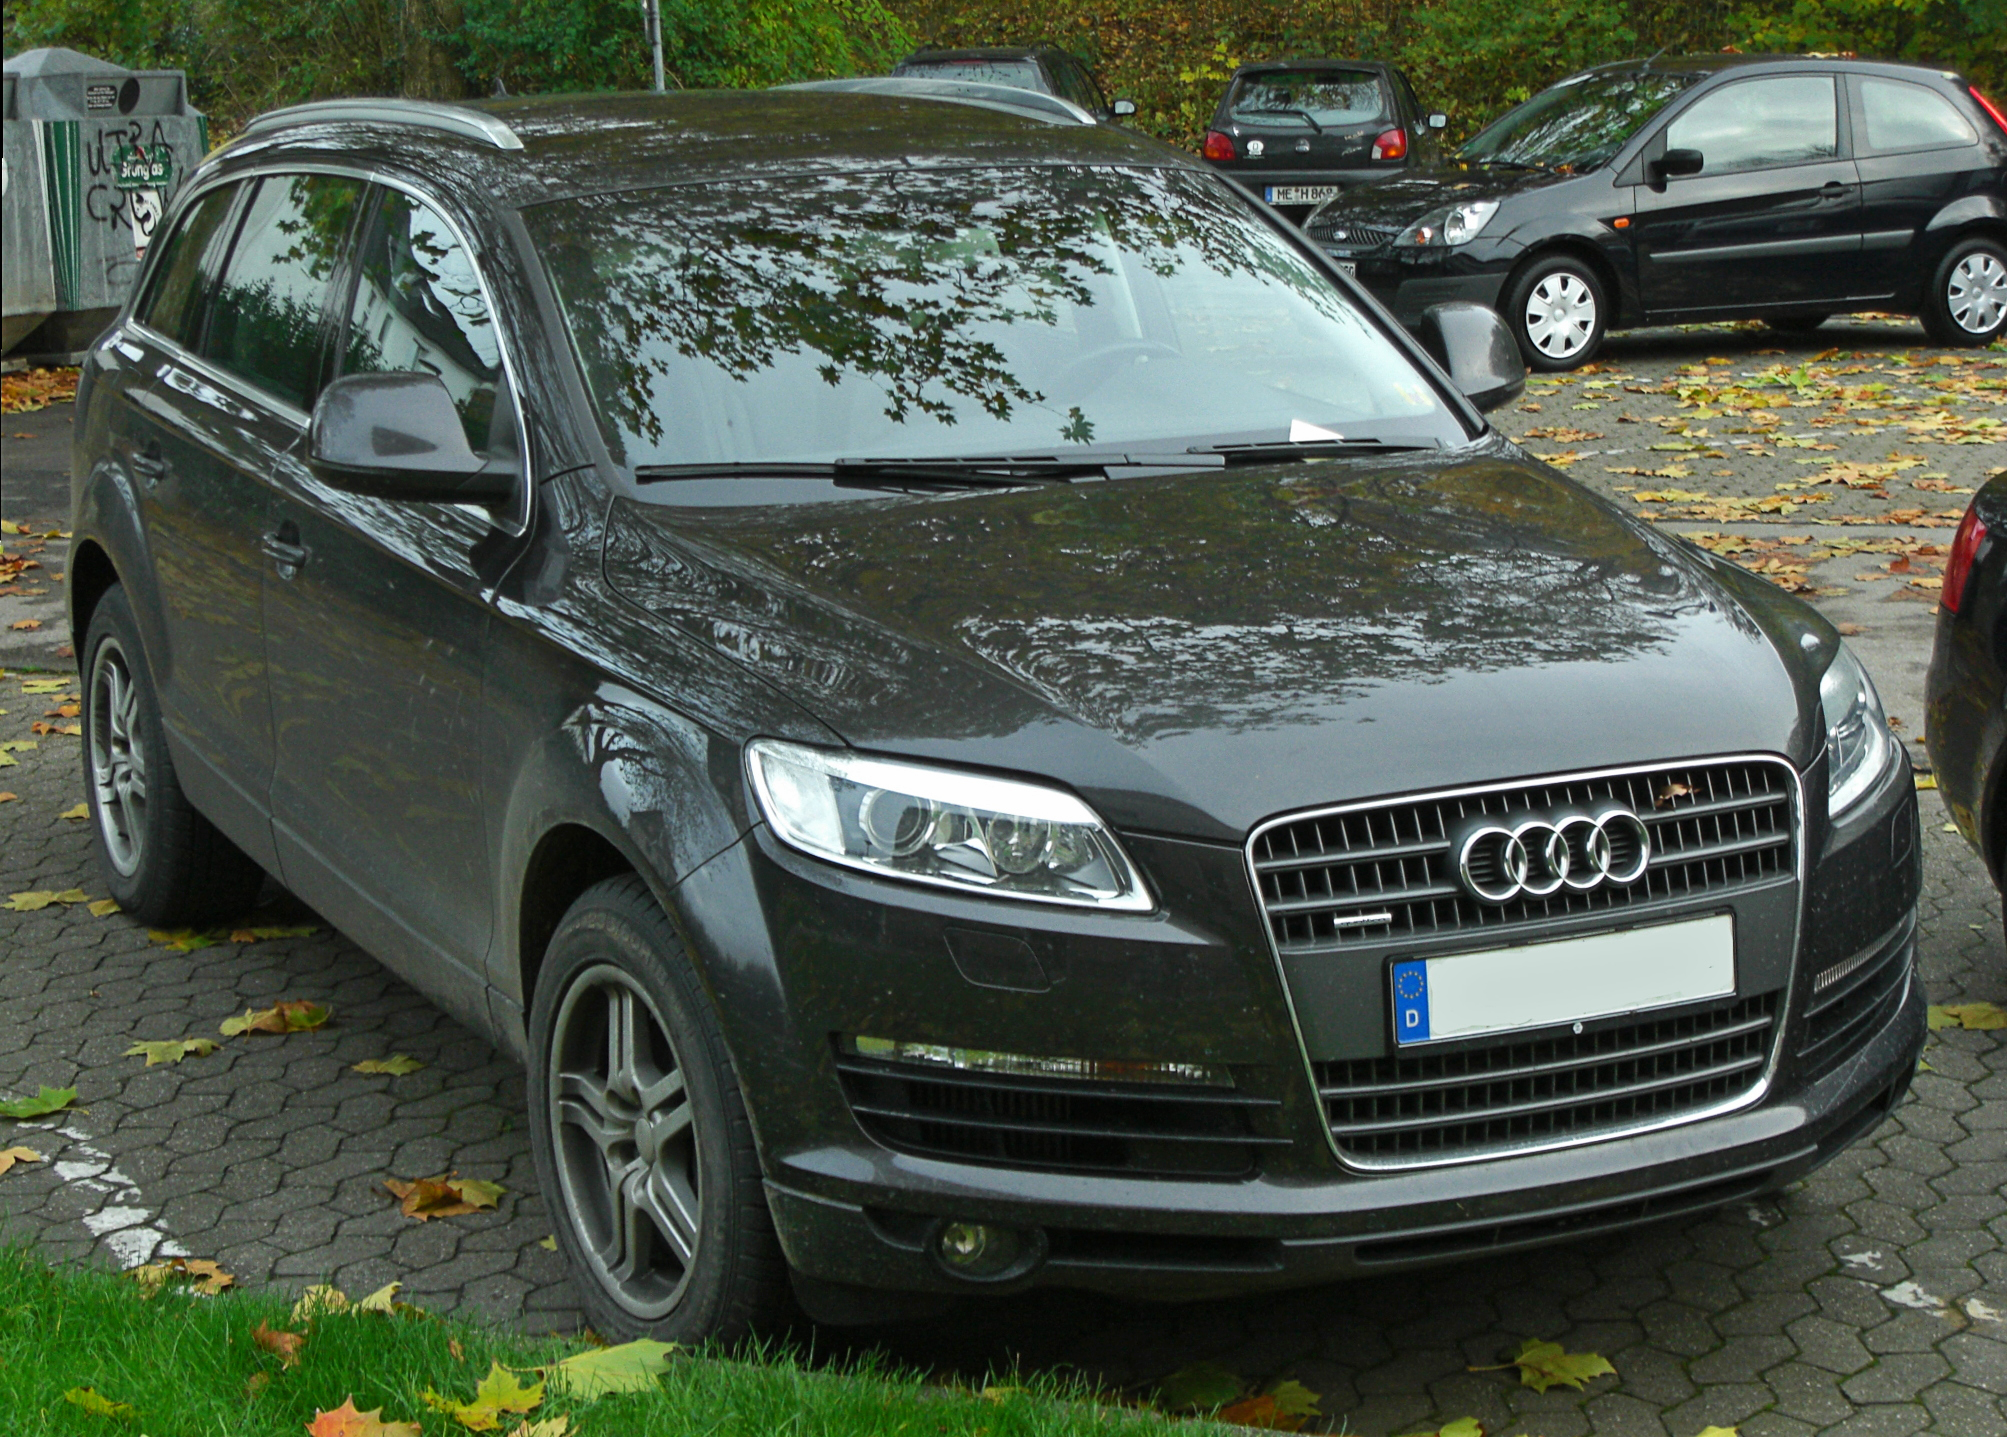 file audi q7 3 0 tdi quattro seit 2006 front mj jpg wikimedia commons. Black Bedroom Furniture Sets. Home Design Ideas